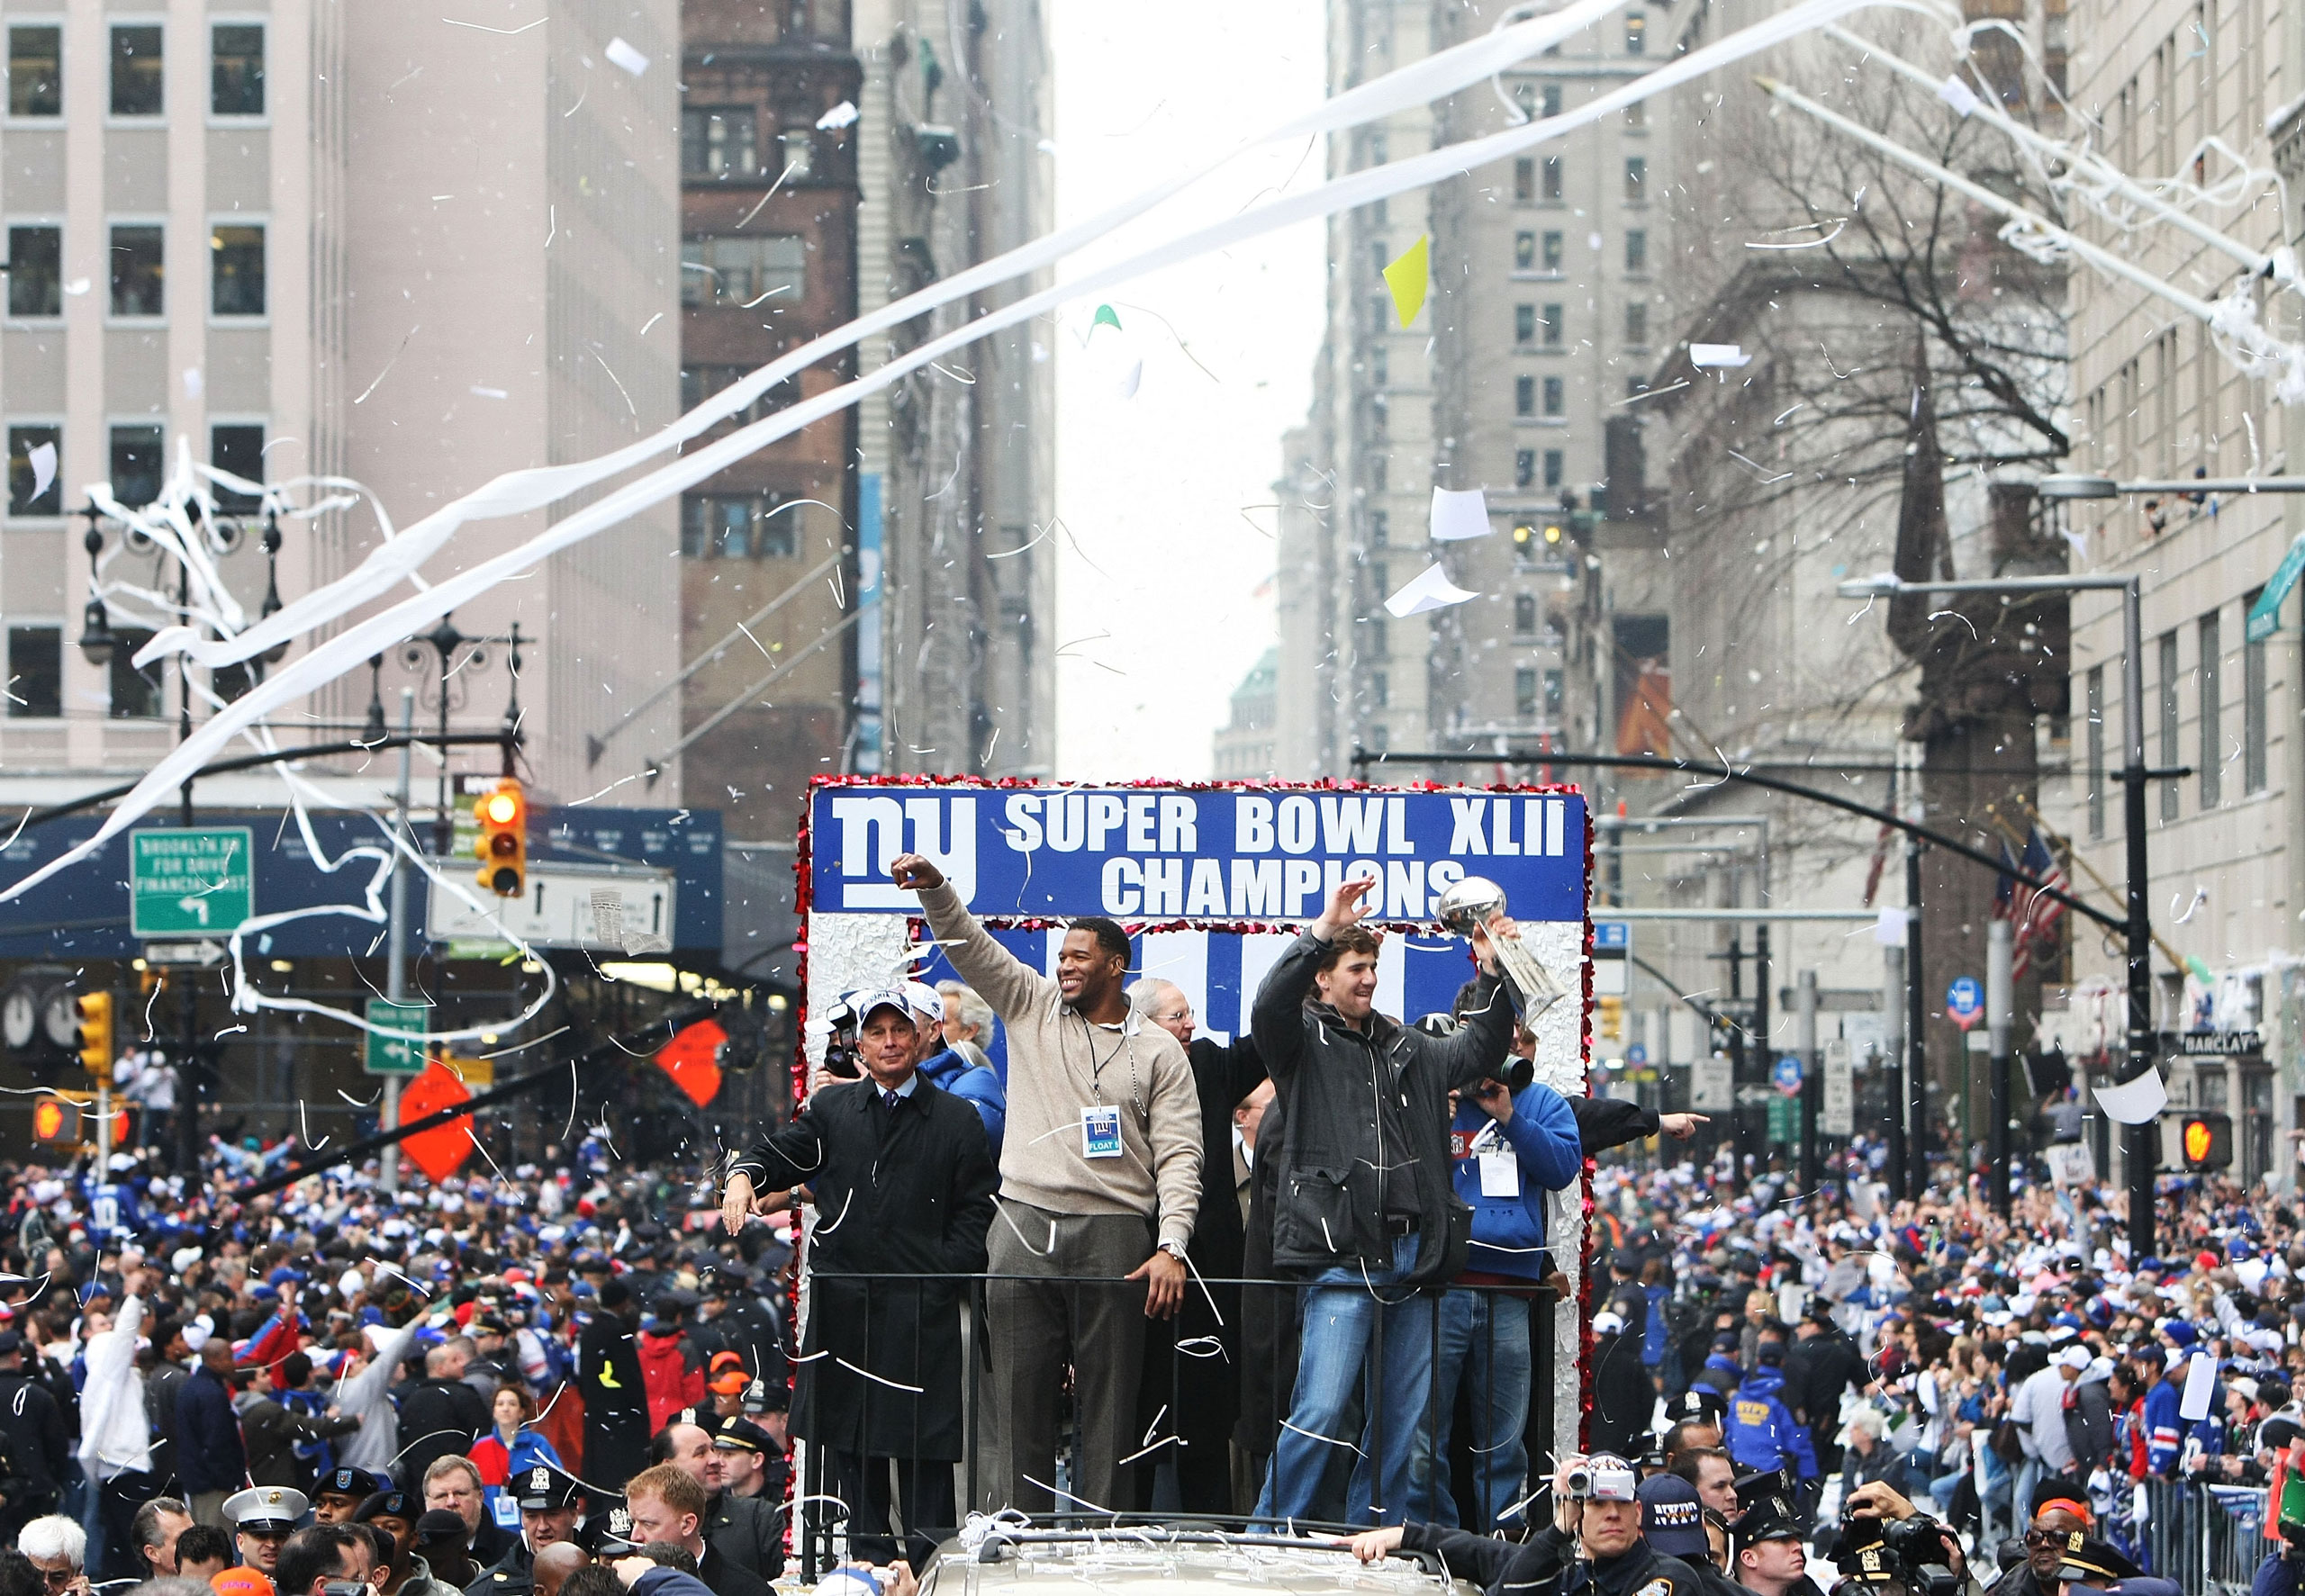 Mayor of New York Michael Bloomberg, with Michael Strahan and Eli Manning of the New York Giants, during the Super Bowl XLII victory parade in New York City on Feb. 5, 2008.